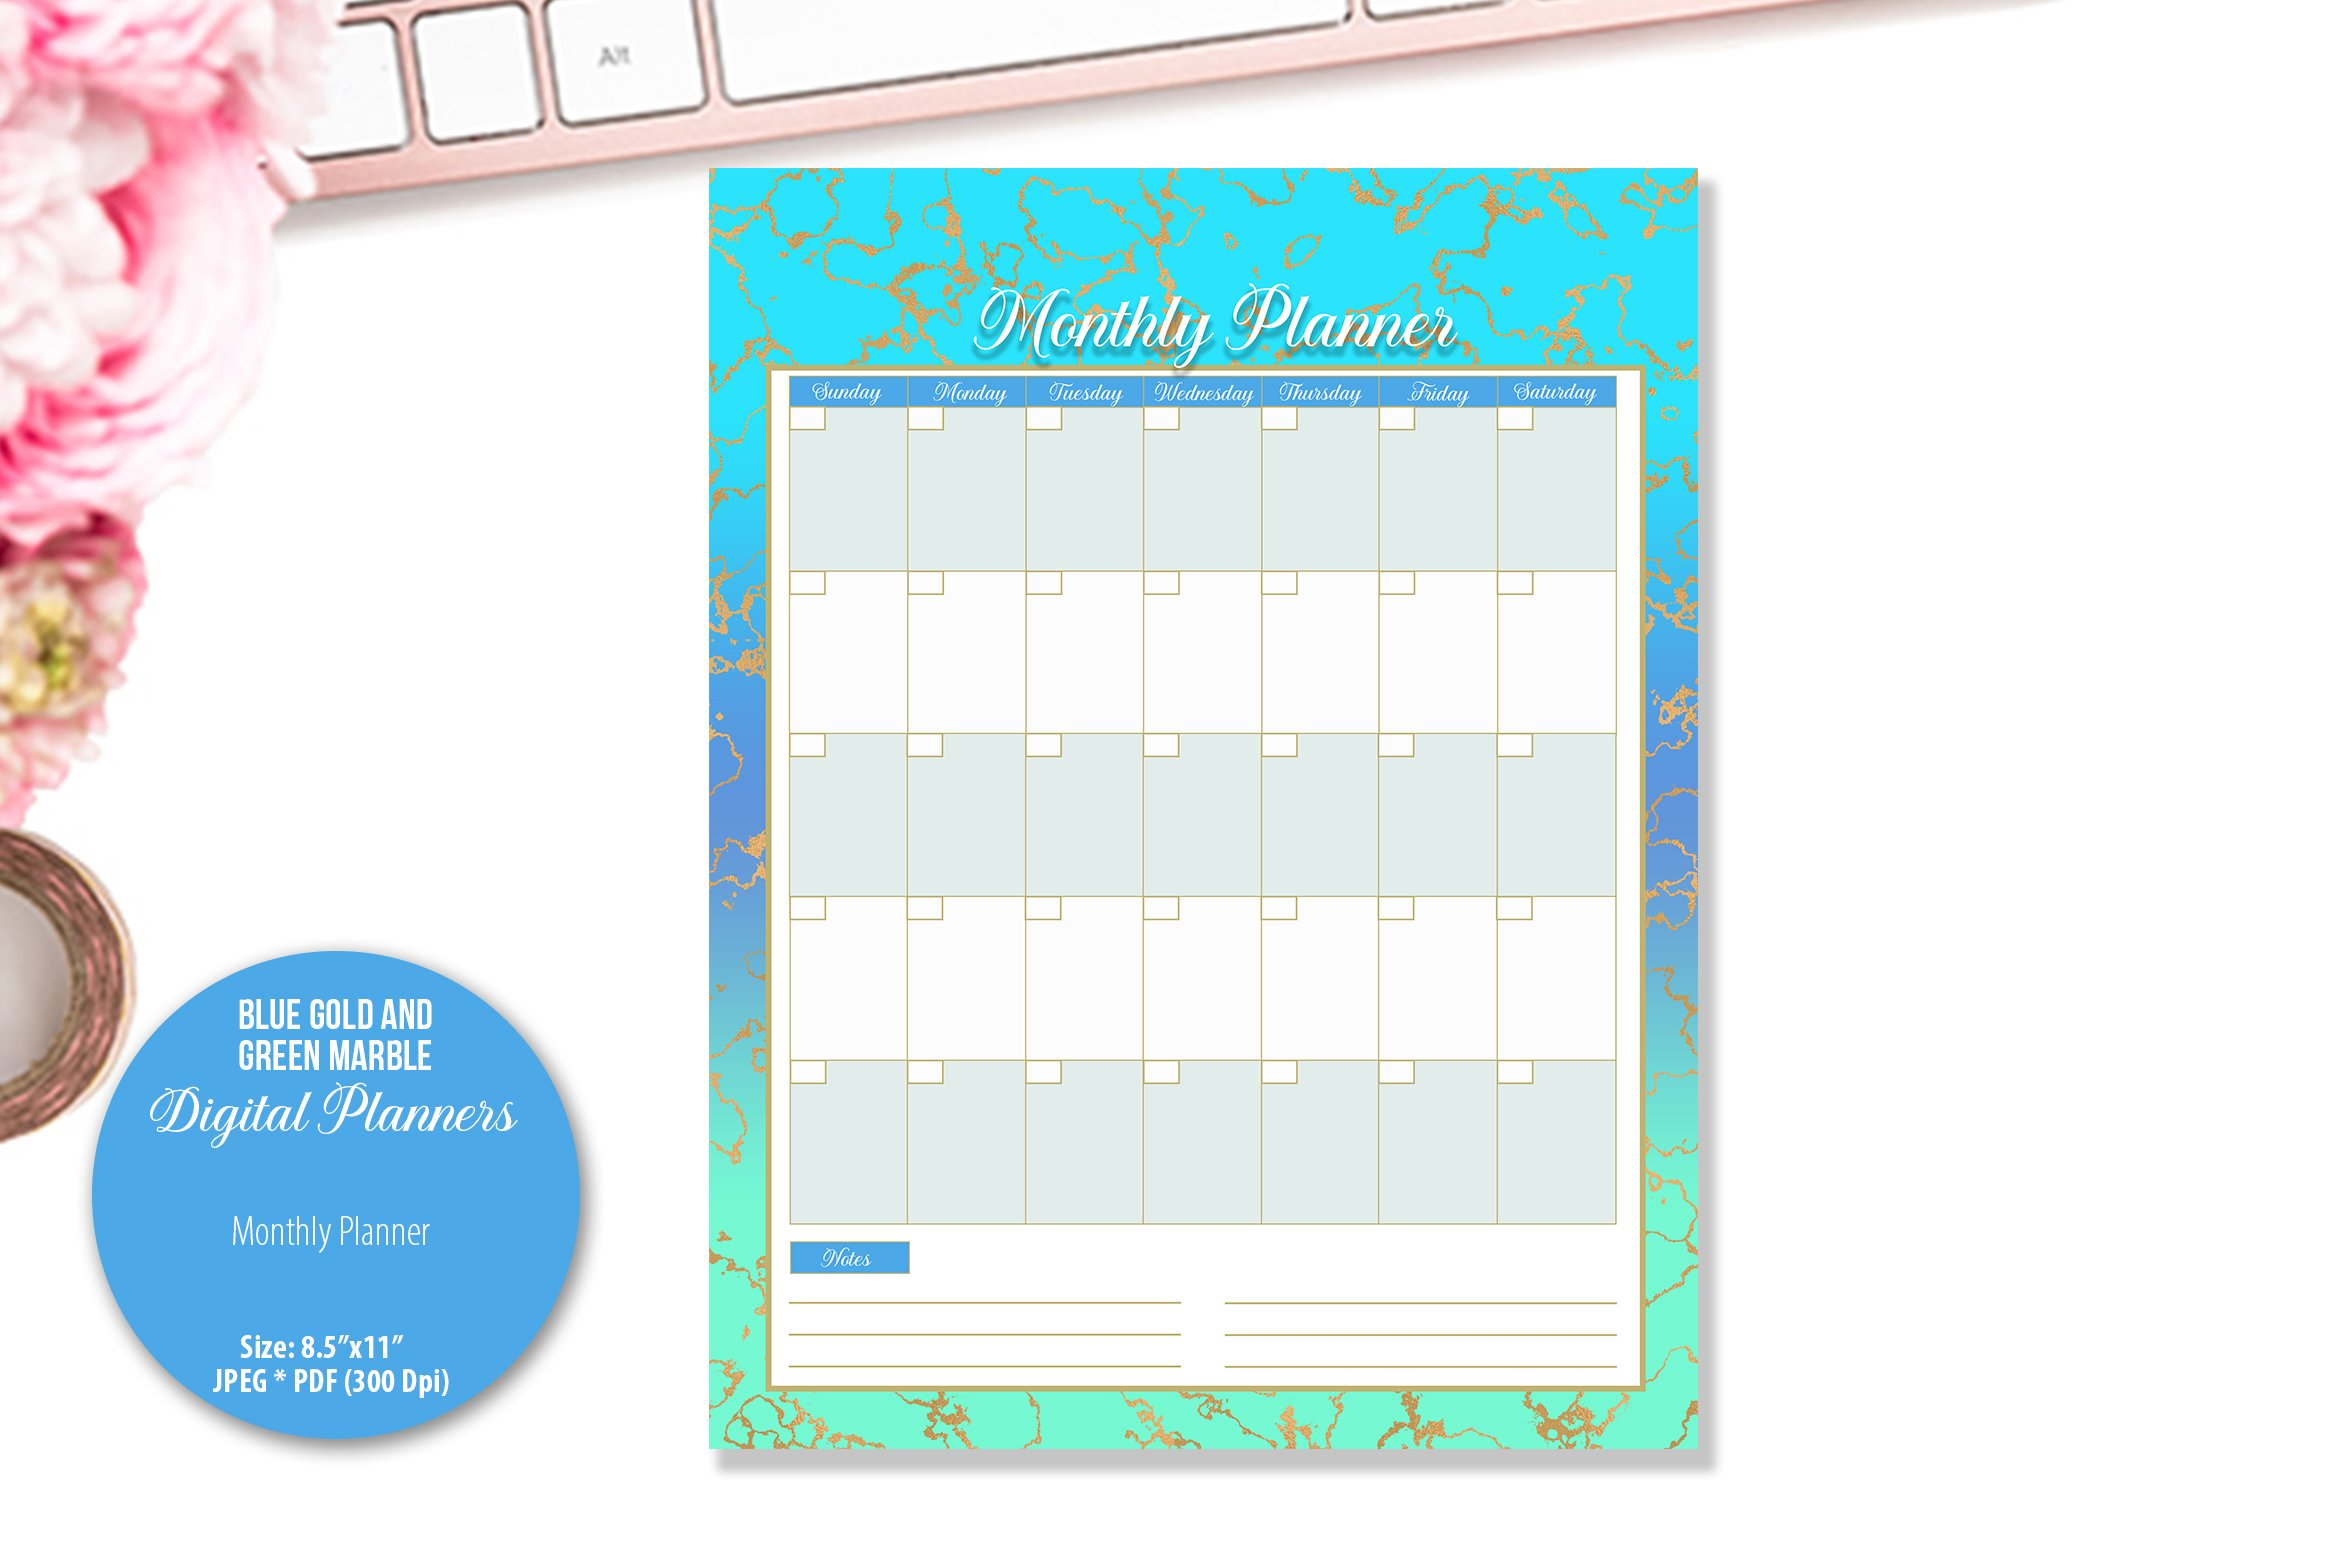 Blue Gold and Green Marble Digital Planner example image 4